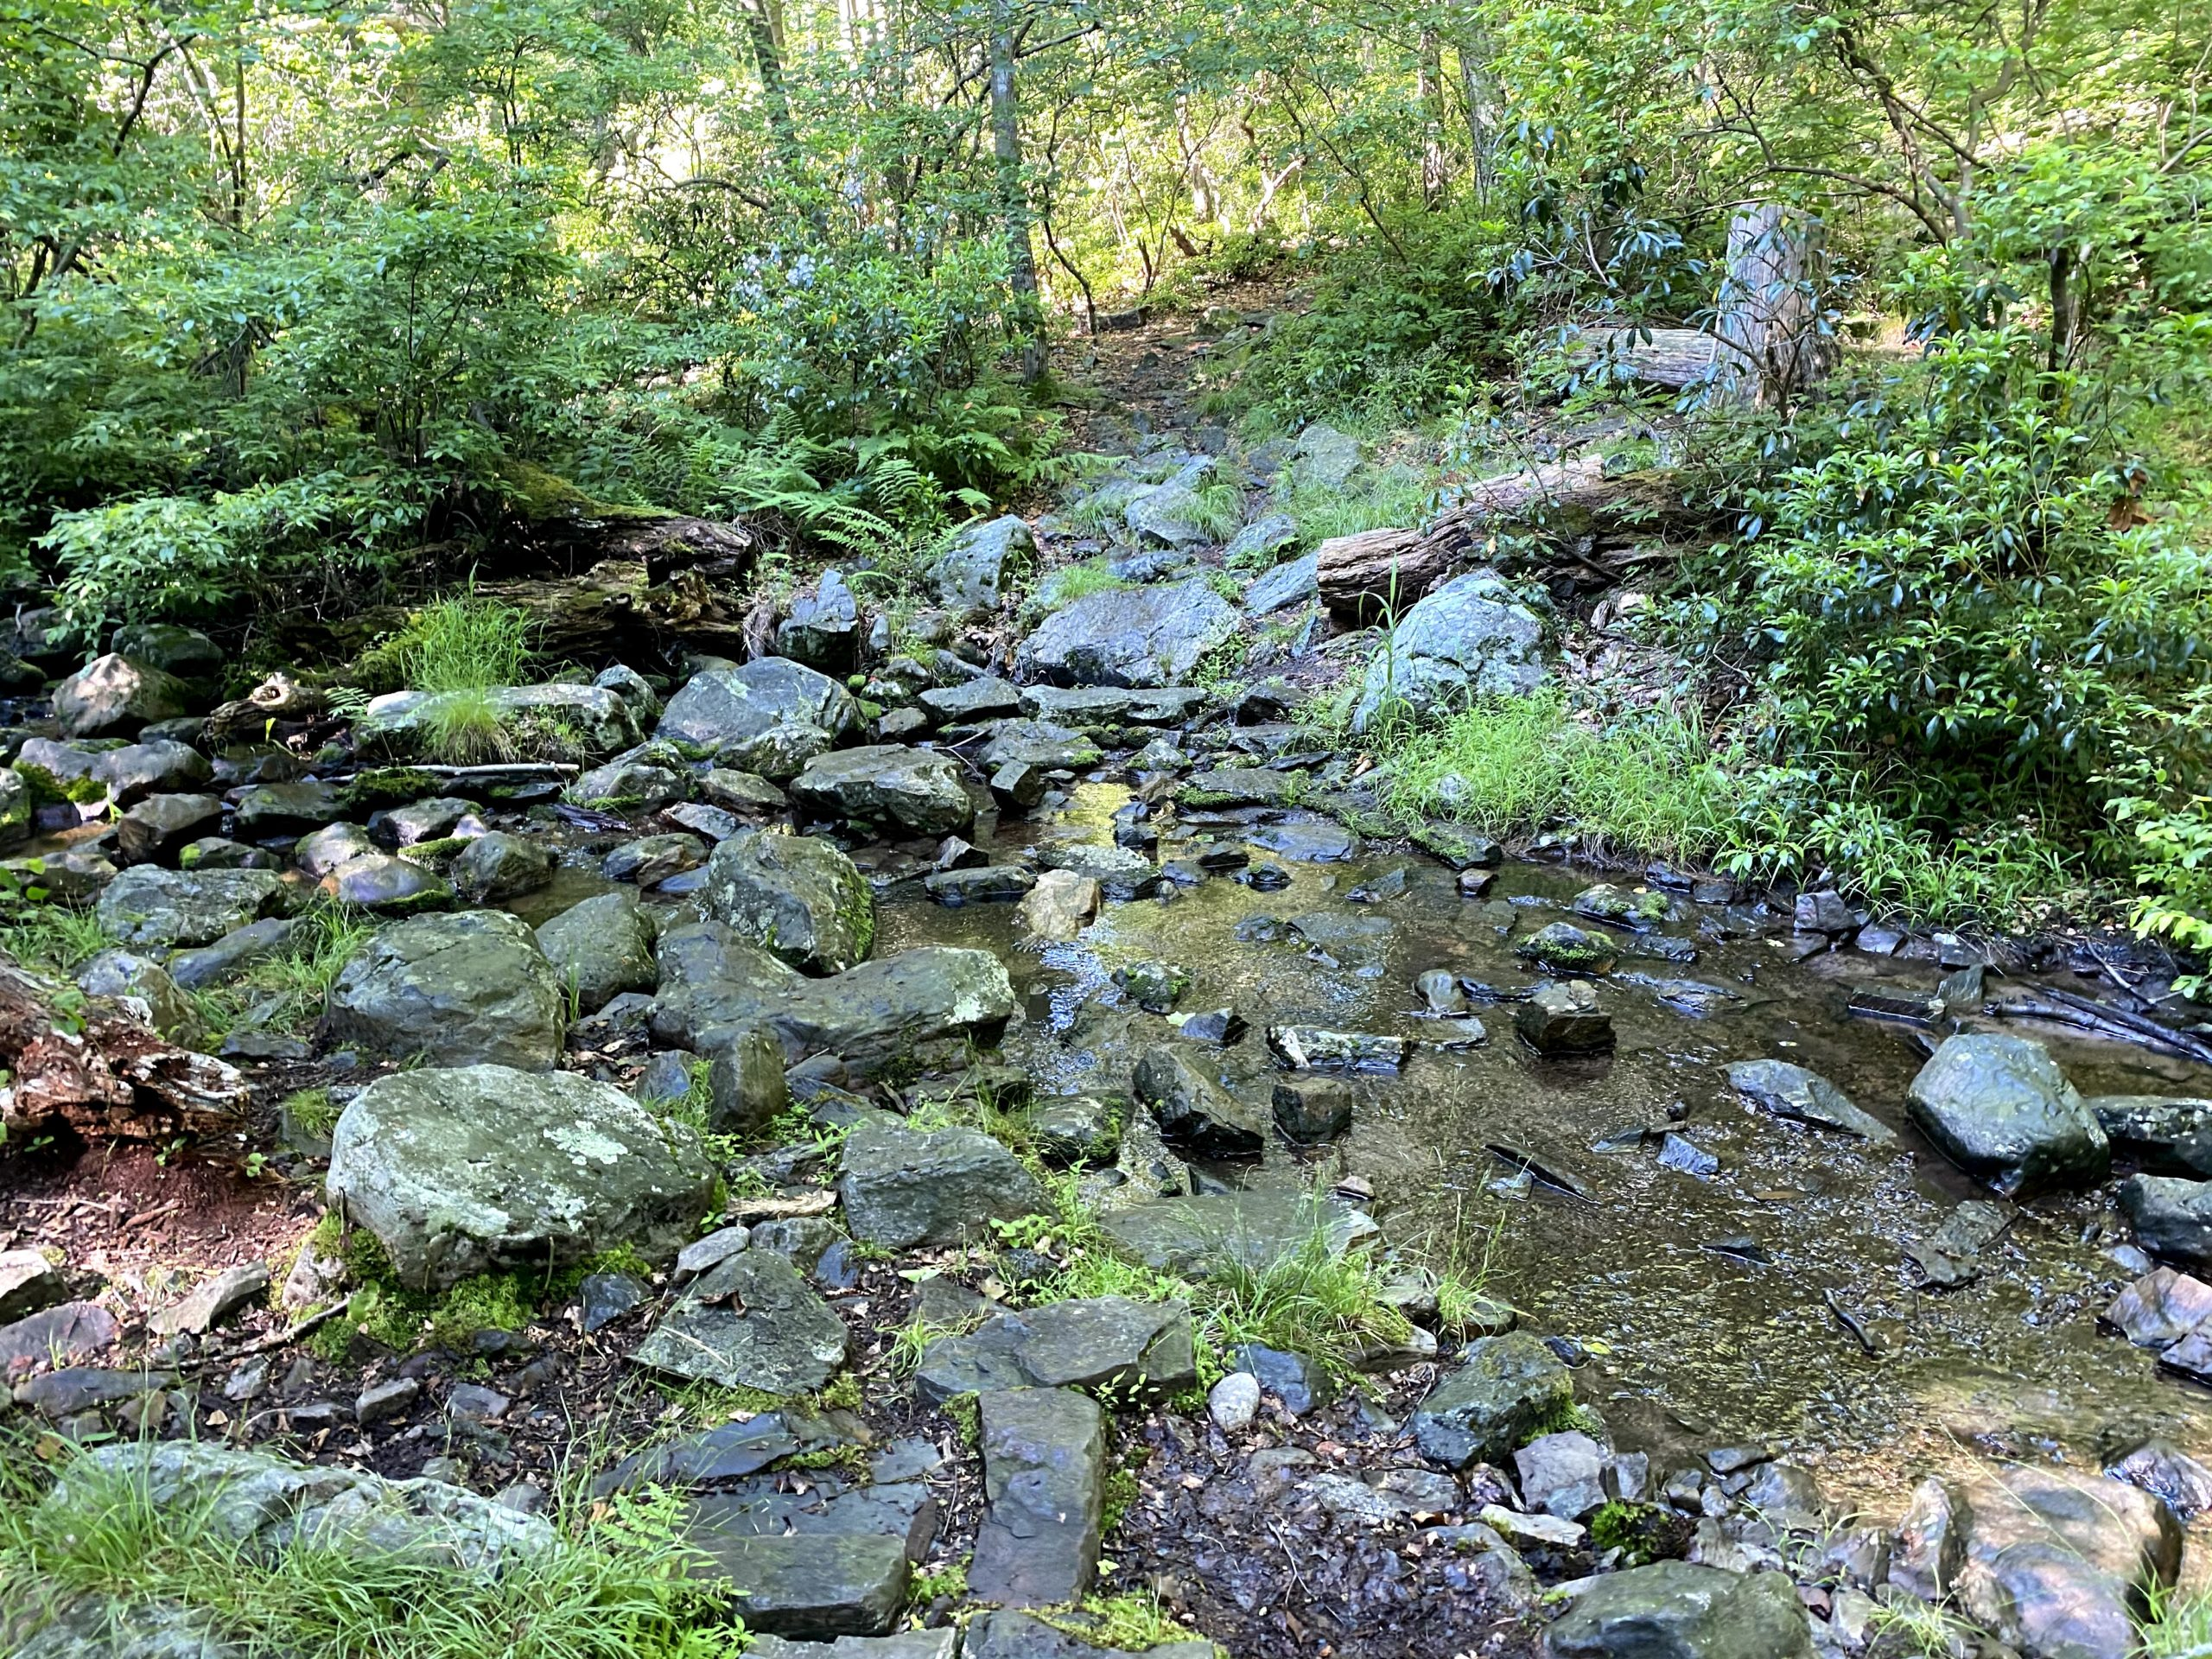 Brook (outlet of Upper Yards Reservoir)